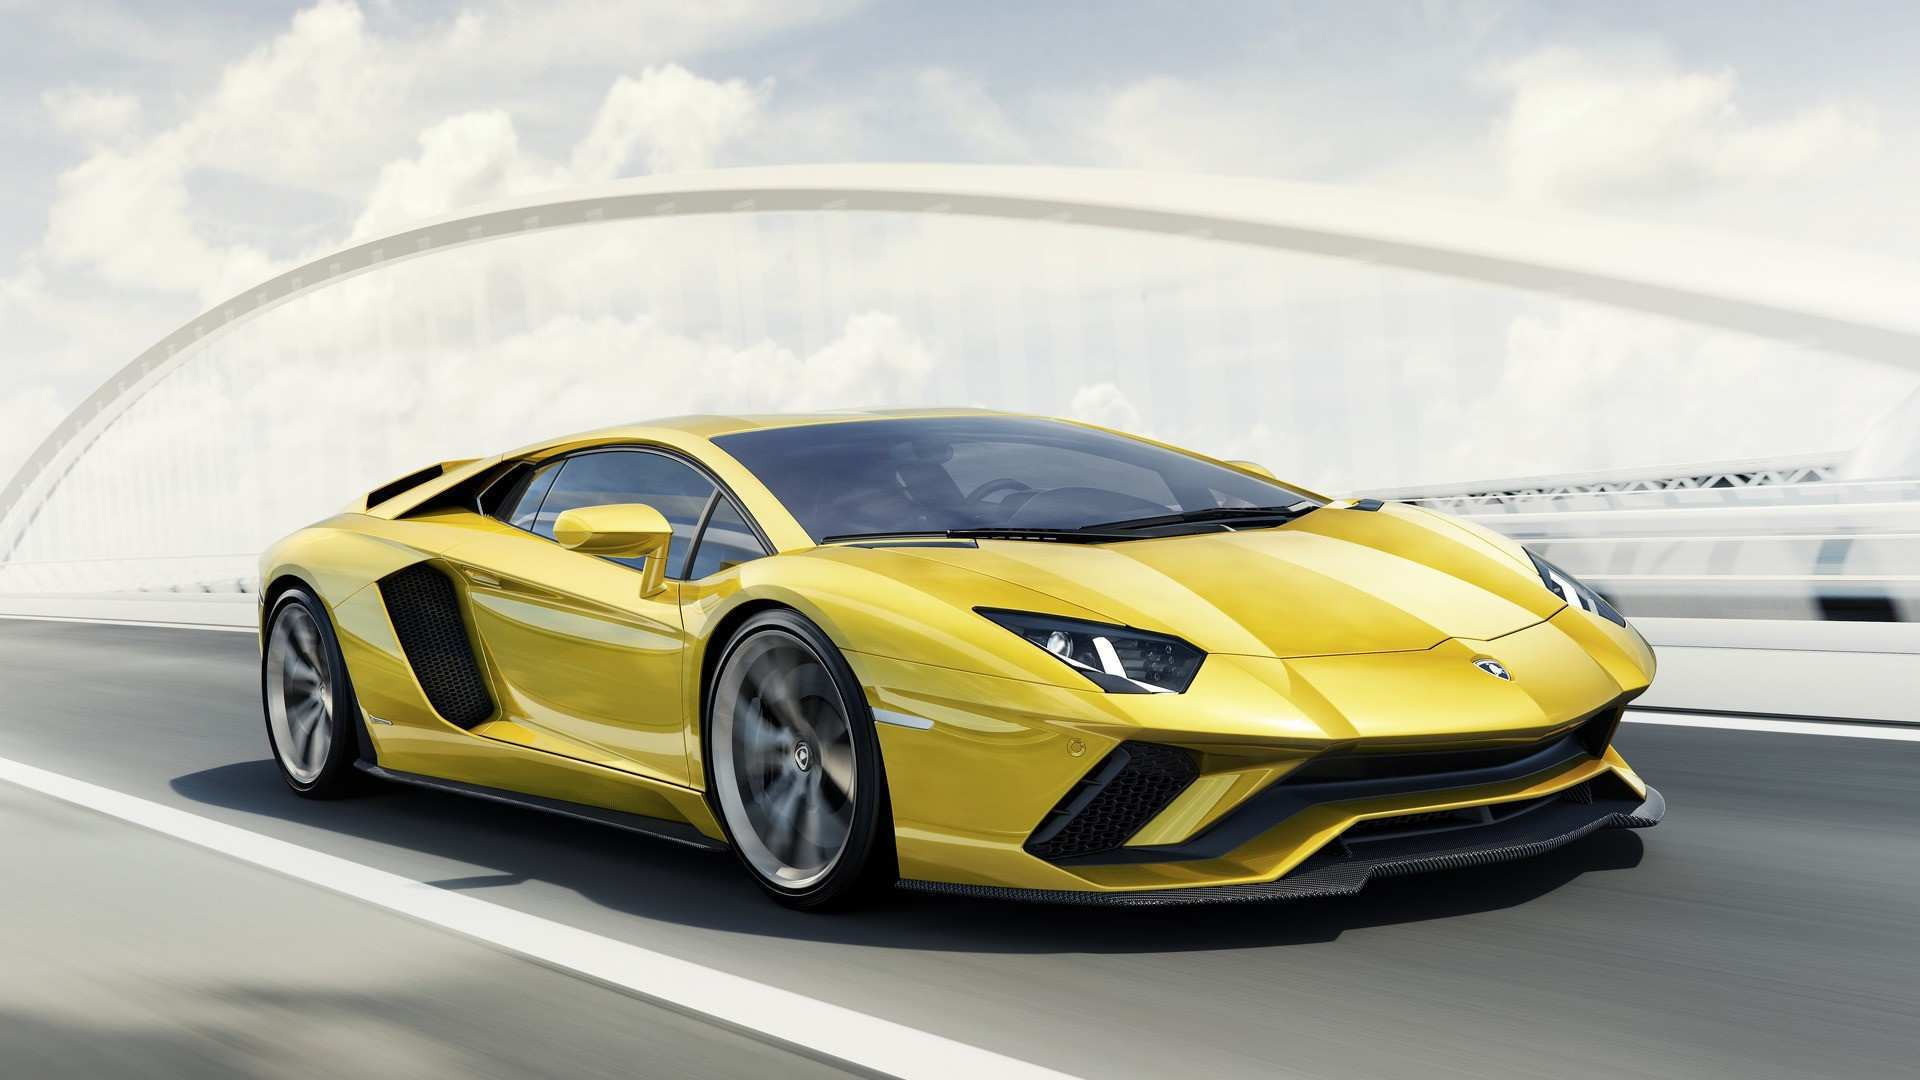 83 All New 2020 Lamborghini Aventador Redesign for 2020 Lamborghini Aventador